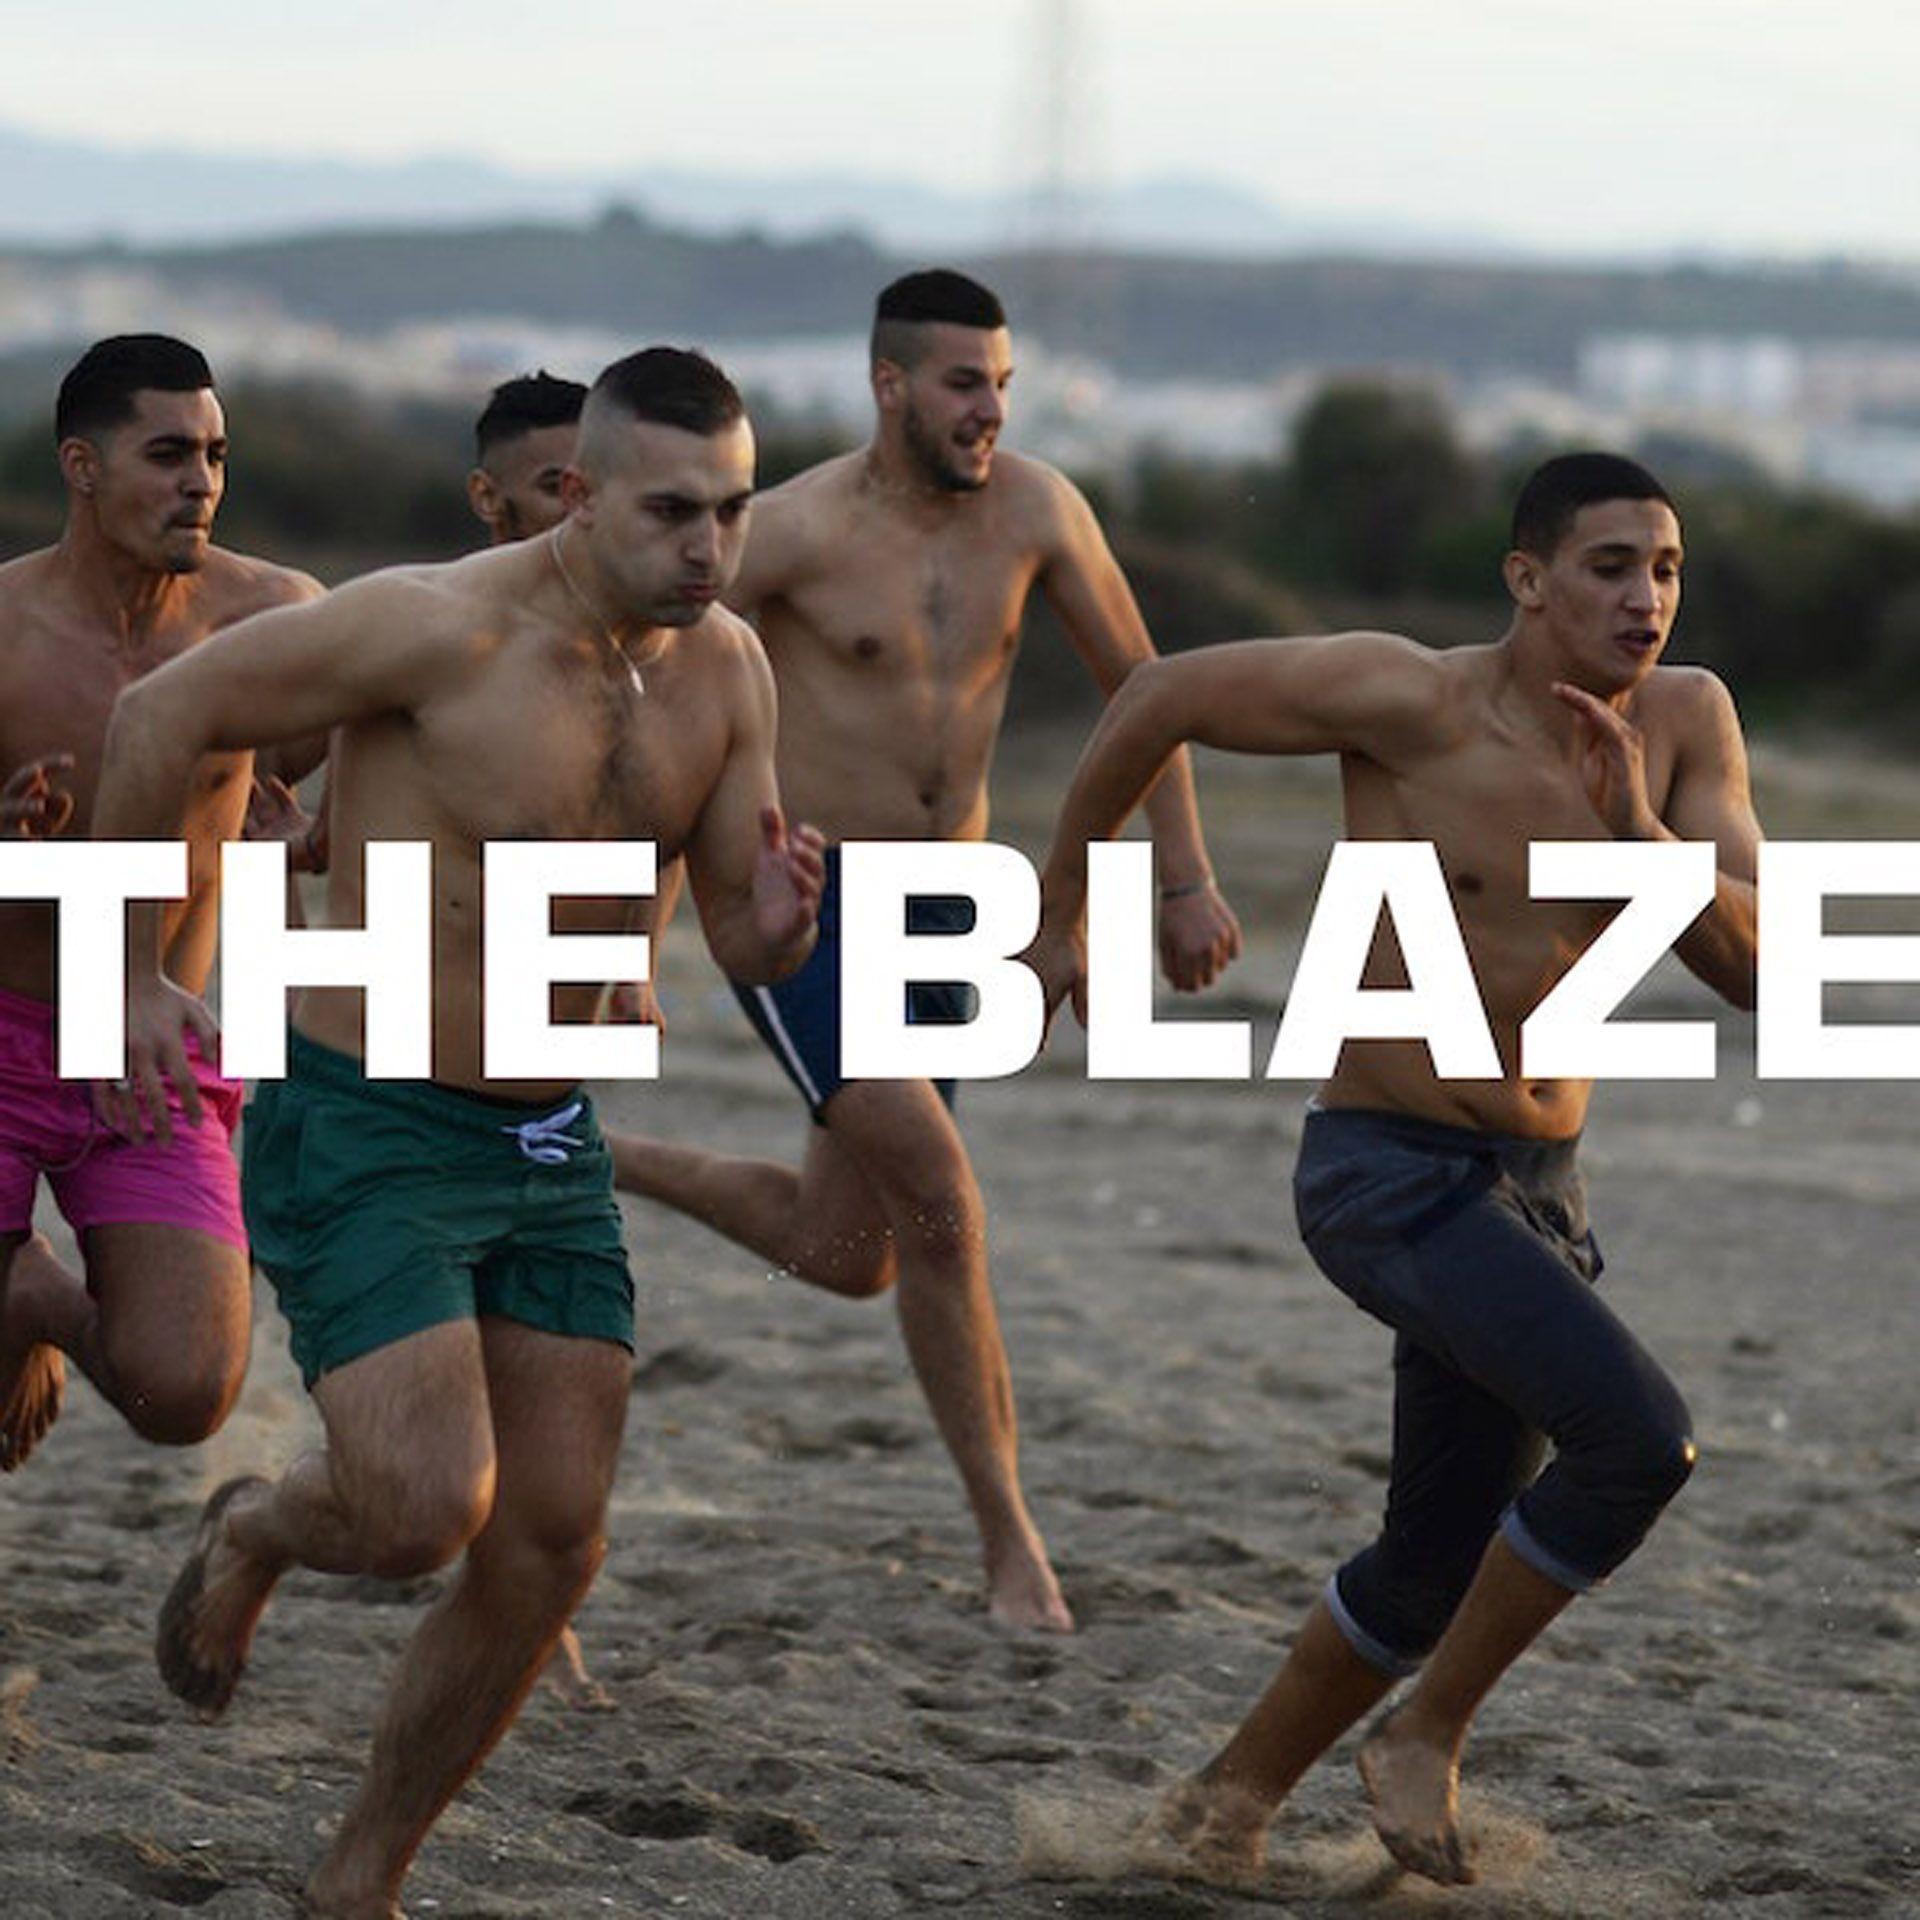 album cover of Territory by The Blaze